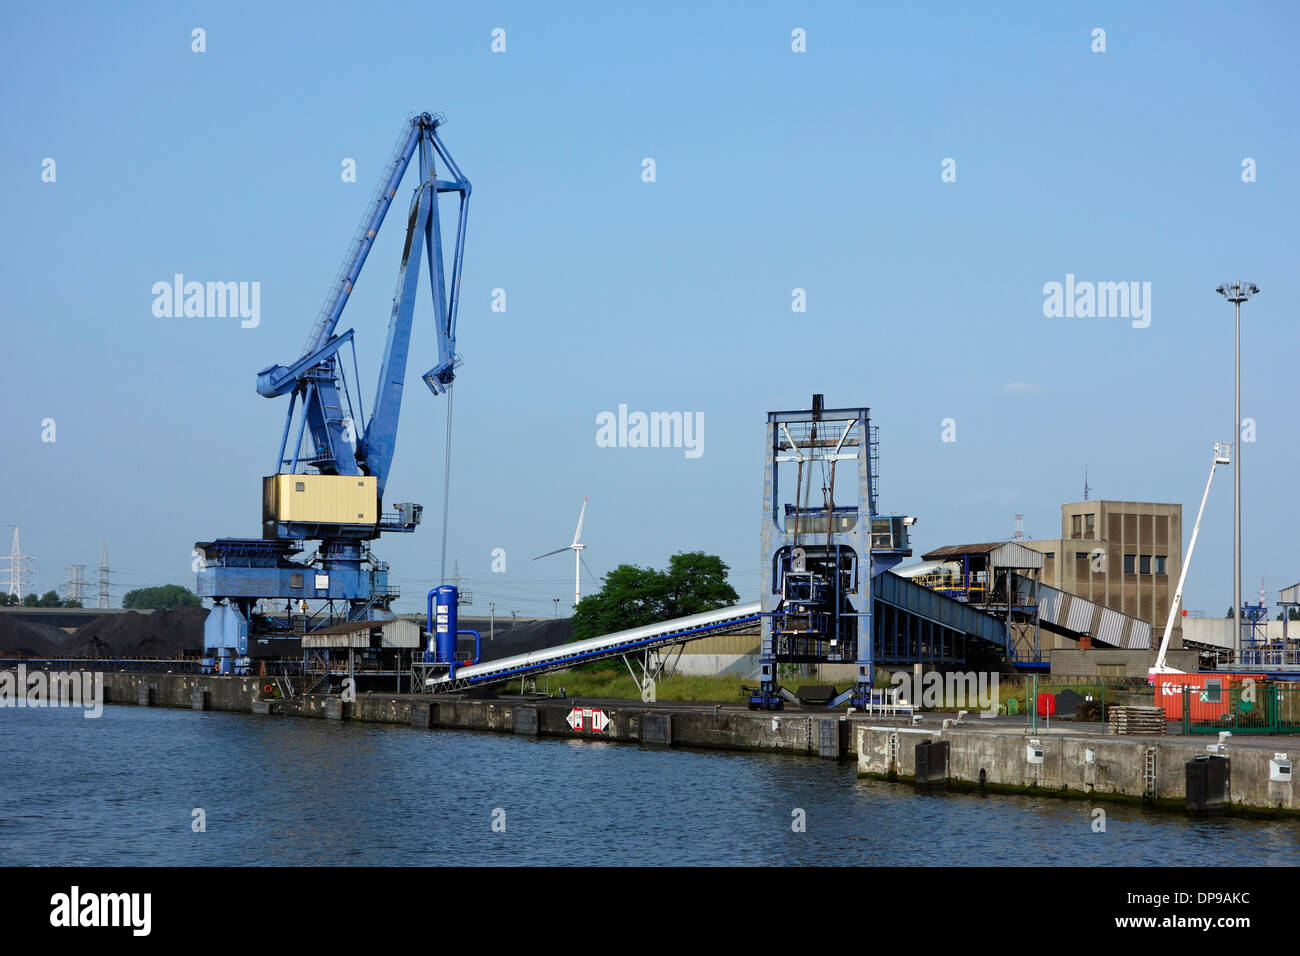 Dock crane and conveyor belt at SEA-invest / Ghent Coal Terminal / GCT at the port of Ghent, East Flanders, Belgium - Stock Image